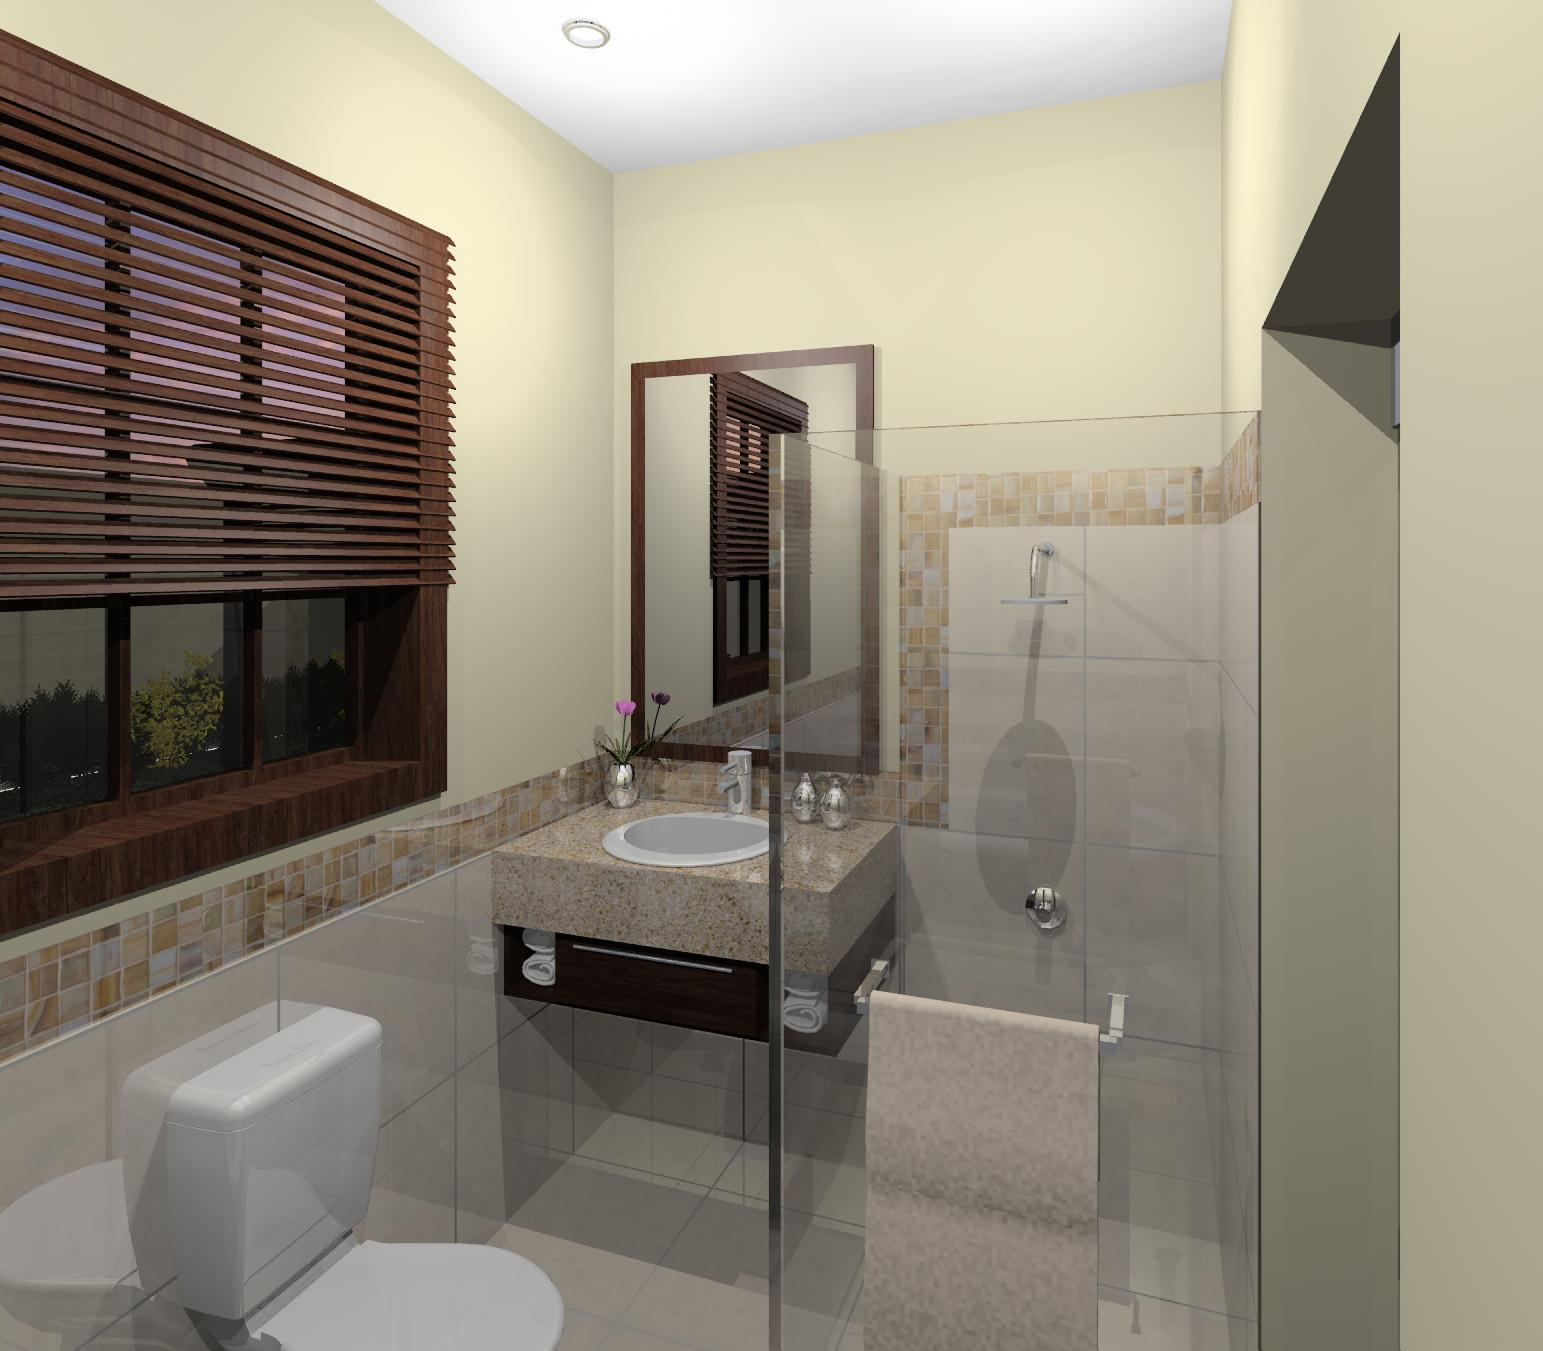 3d renderings by knoesen rene at for 7 x 4 bathroom designs